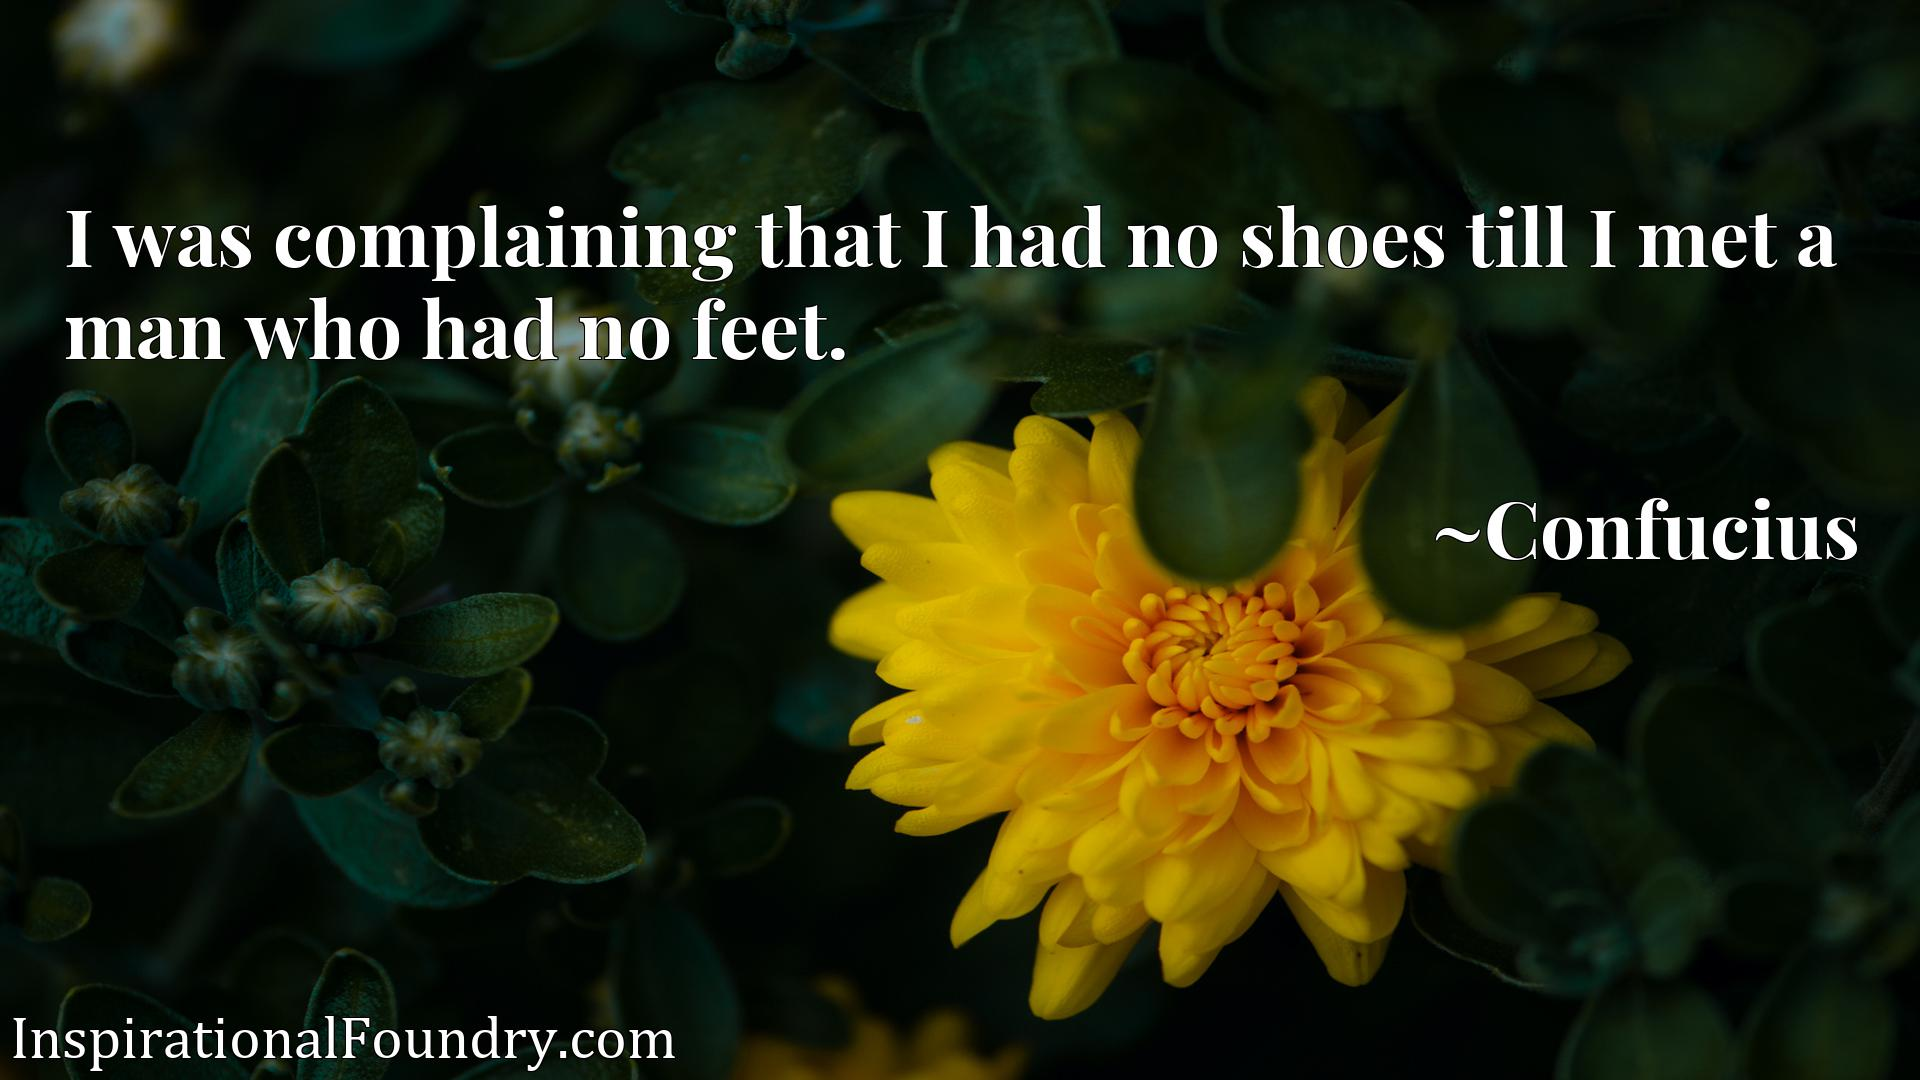 I was complaining that I had no shoes till I met a man who had no feet.